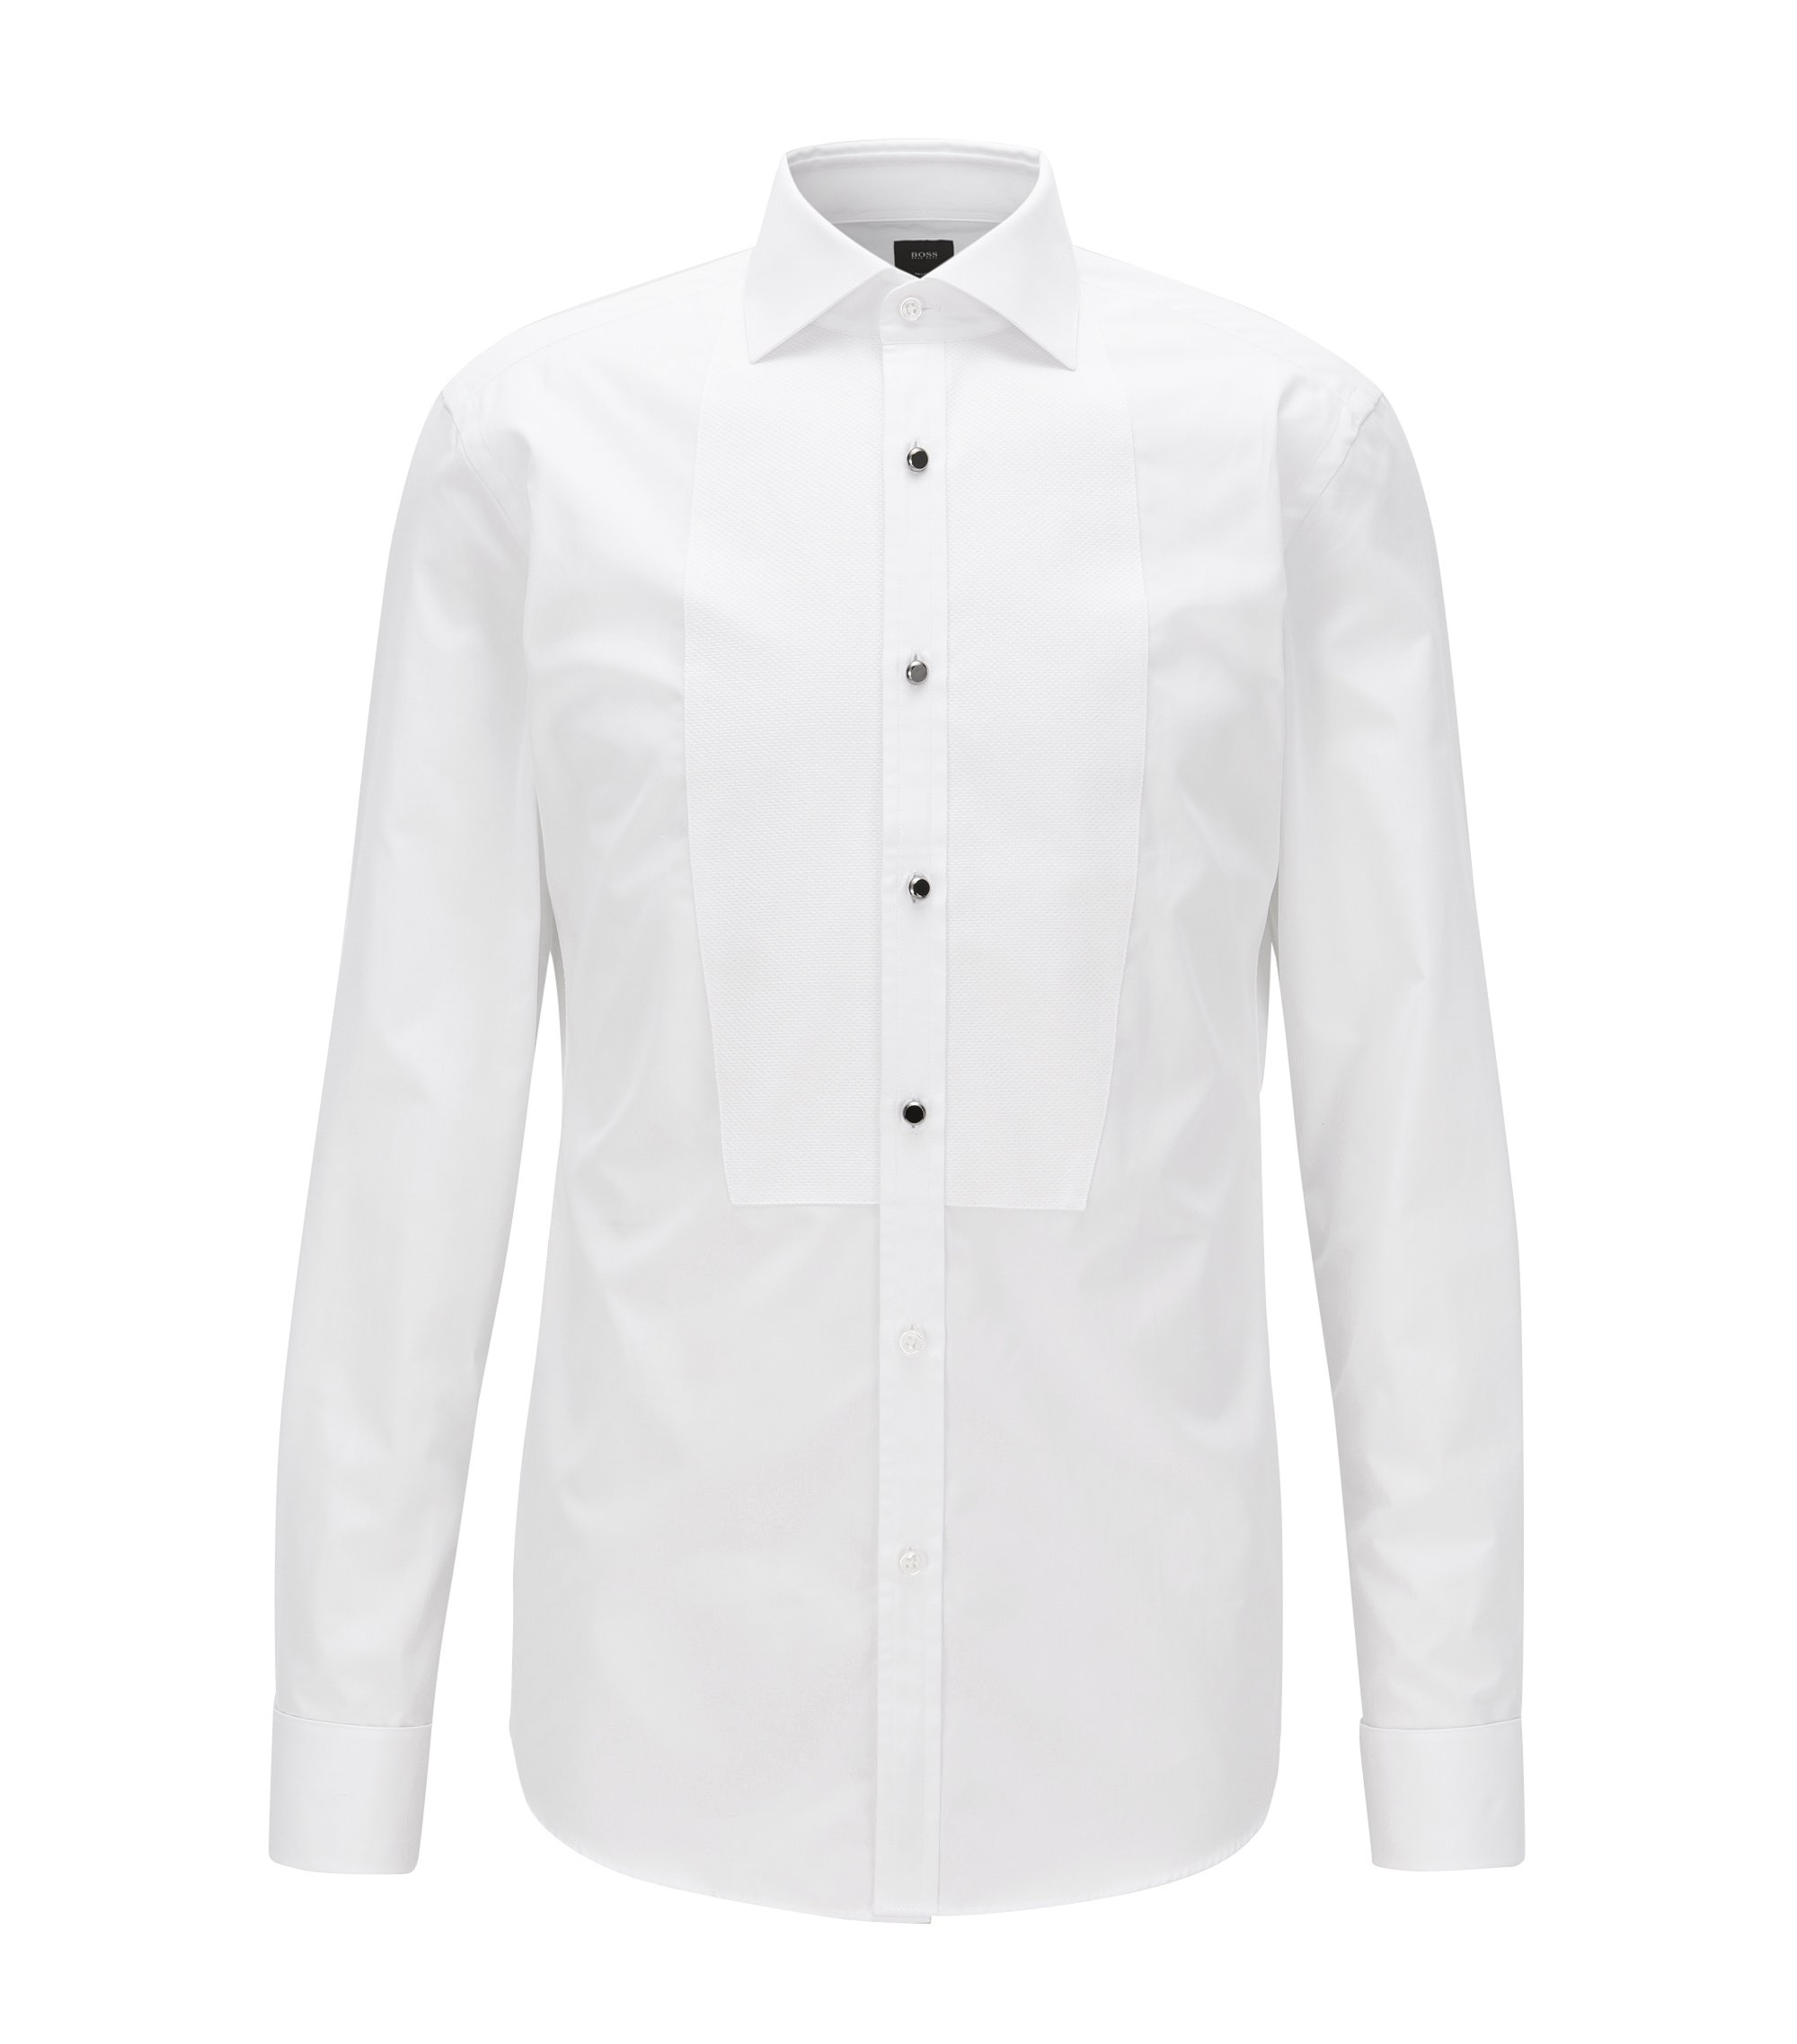 Dobby-Bib 2-Ply Cotton Tuxedo Shirt, Slim Fit | T-Calvin, White